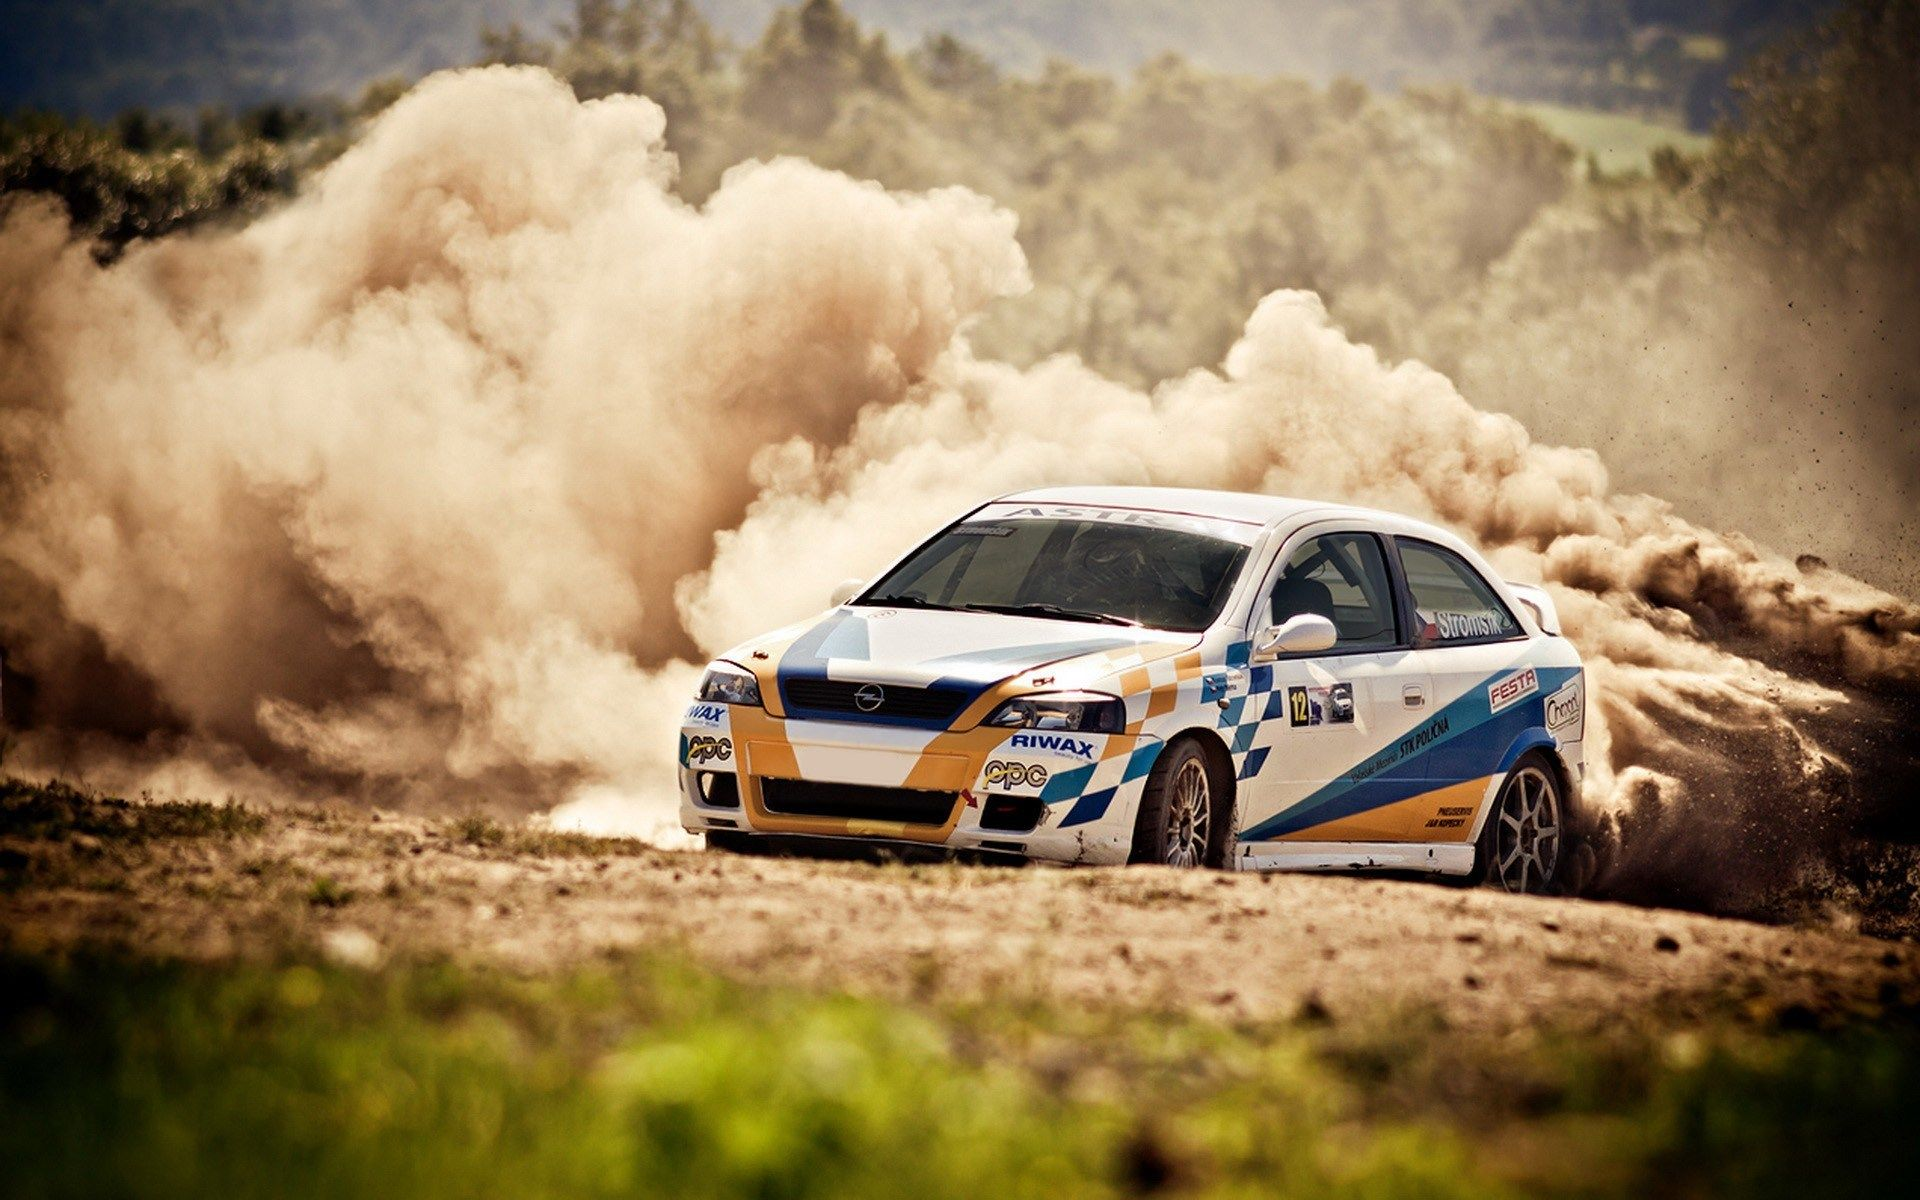 Racing Wallpaper Free For Desktop Racing Category With Images